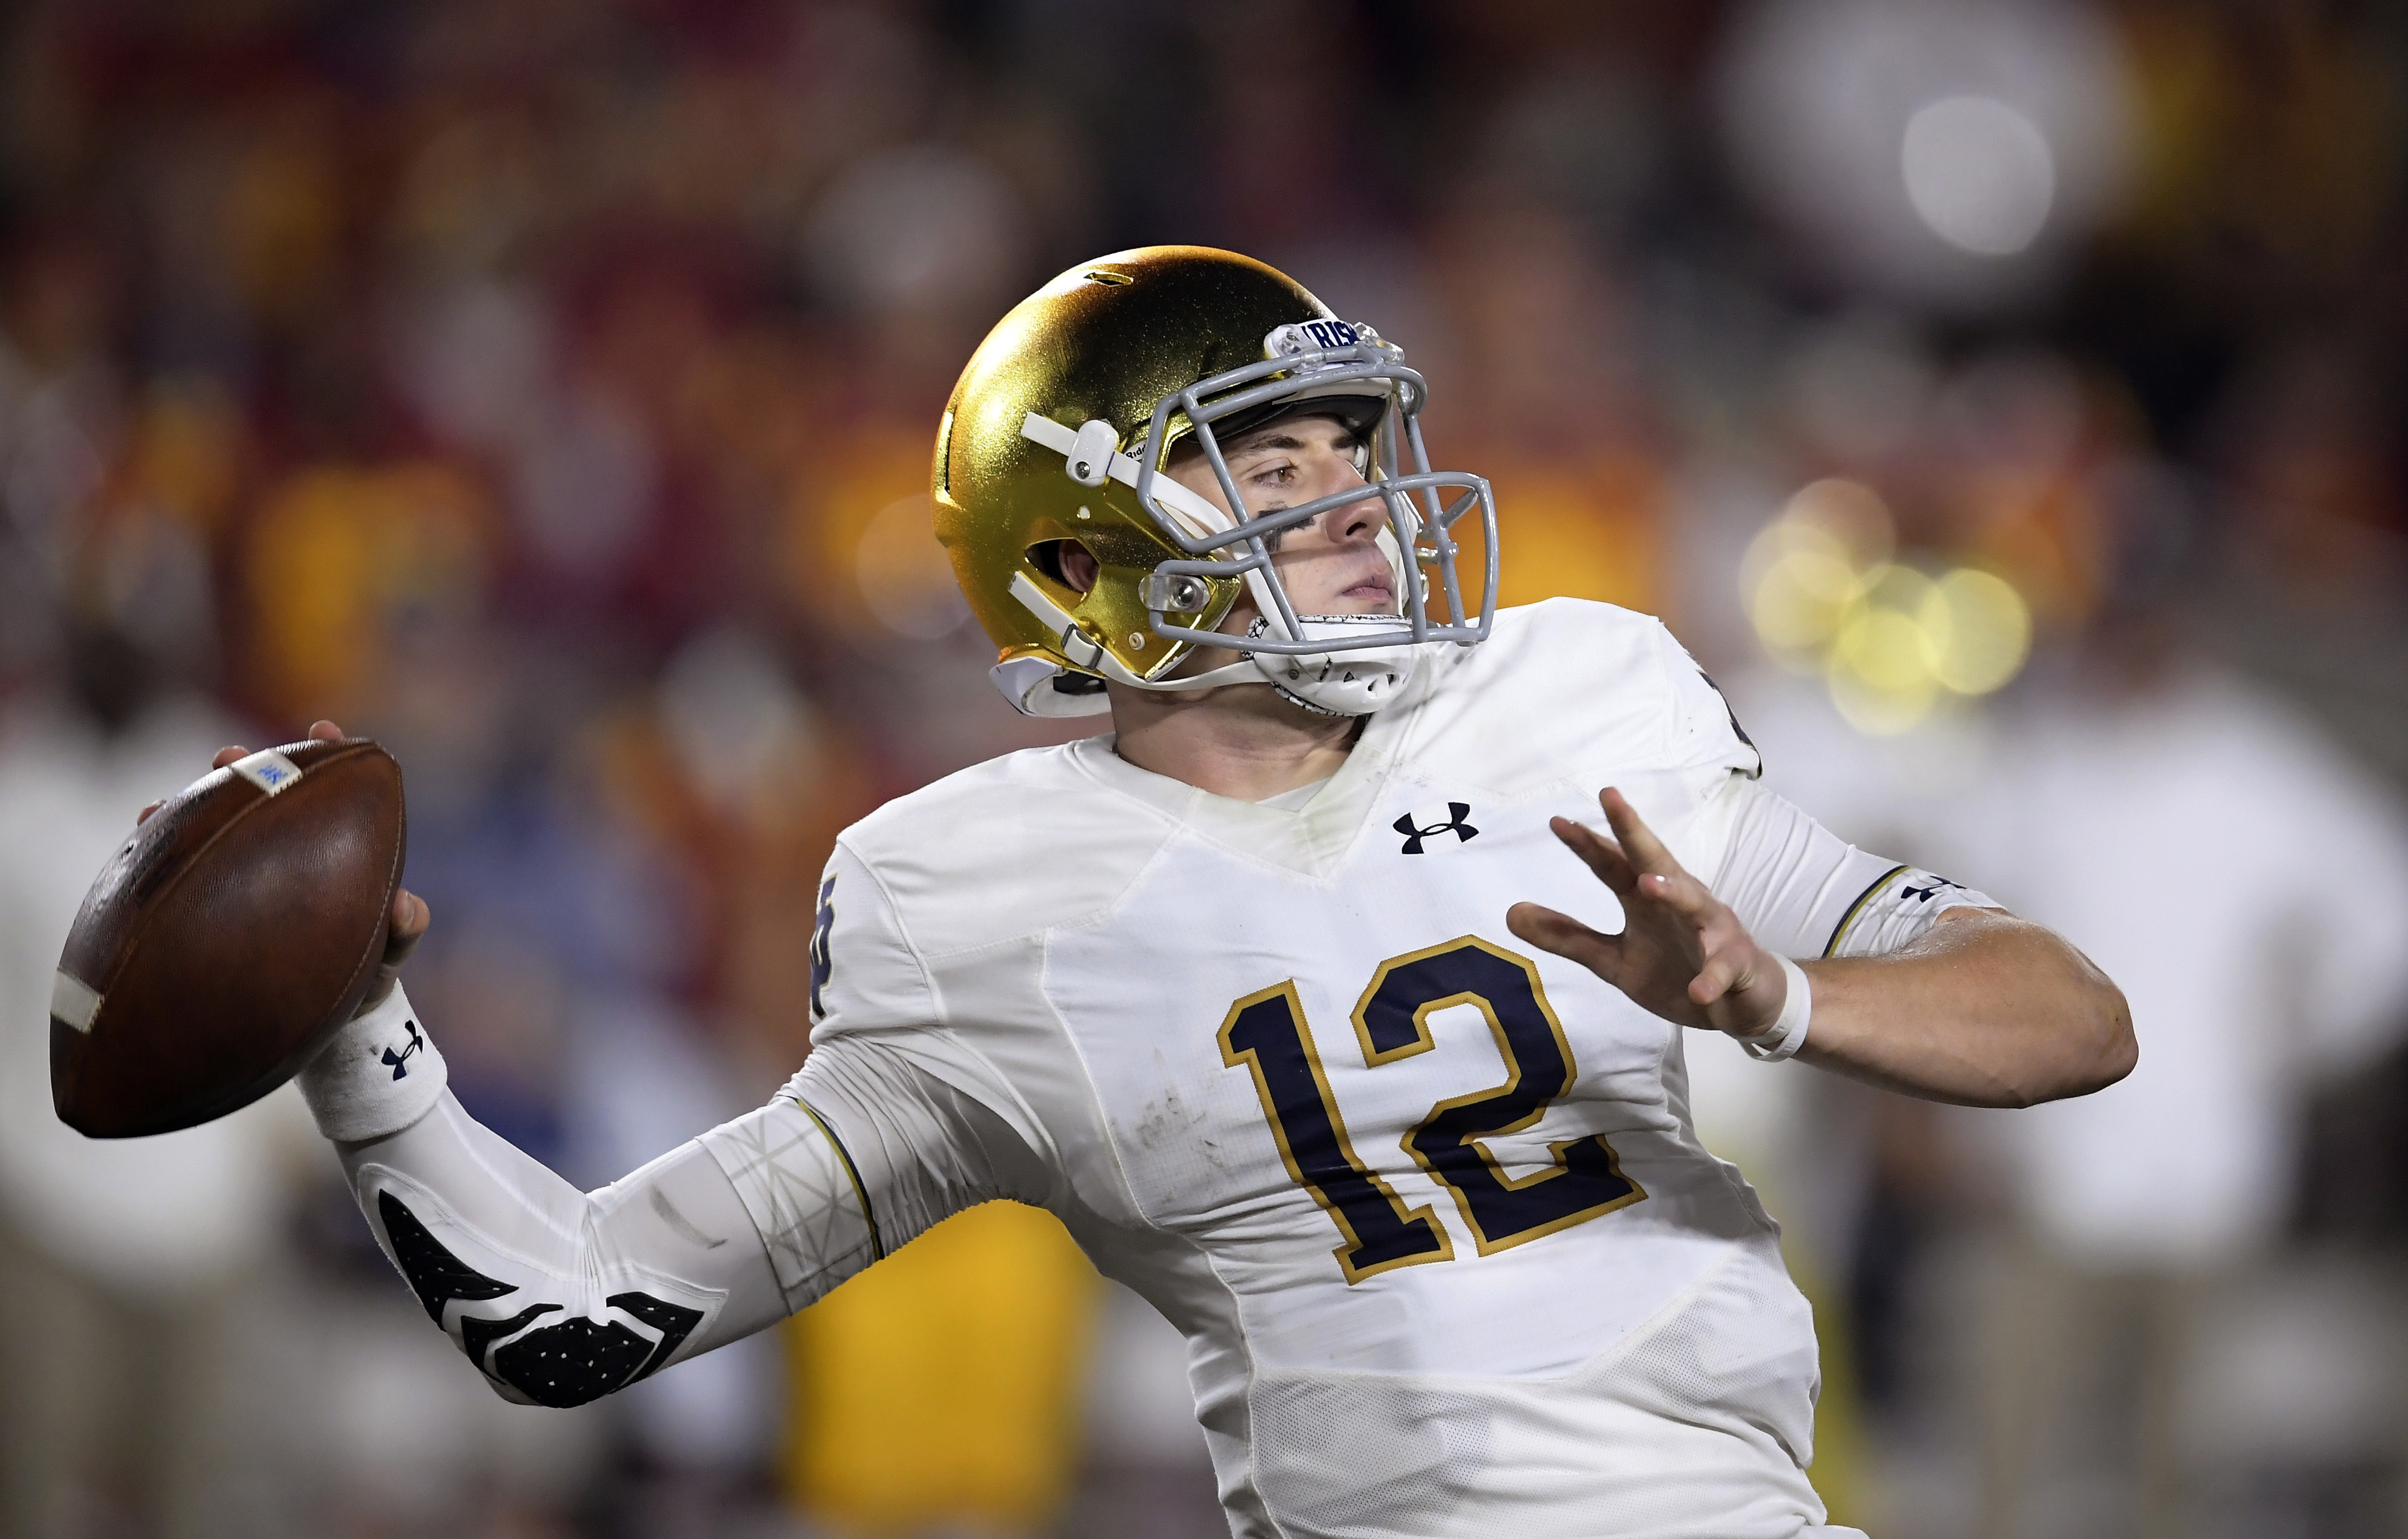 FILE - In this Nov. 24, 2018, file photo, Notre Dame quarterback Ian Book throws a pass during the first half of the team's NCAA college football game against Southern California in Los Angeles. No. 2 Clemson plays No. 3 Notre Dame in the Cotton Bowl on Dec. 29, 2018. (AP Photo/Mark J. Terrill, File)